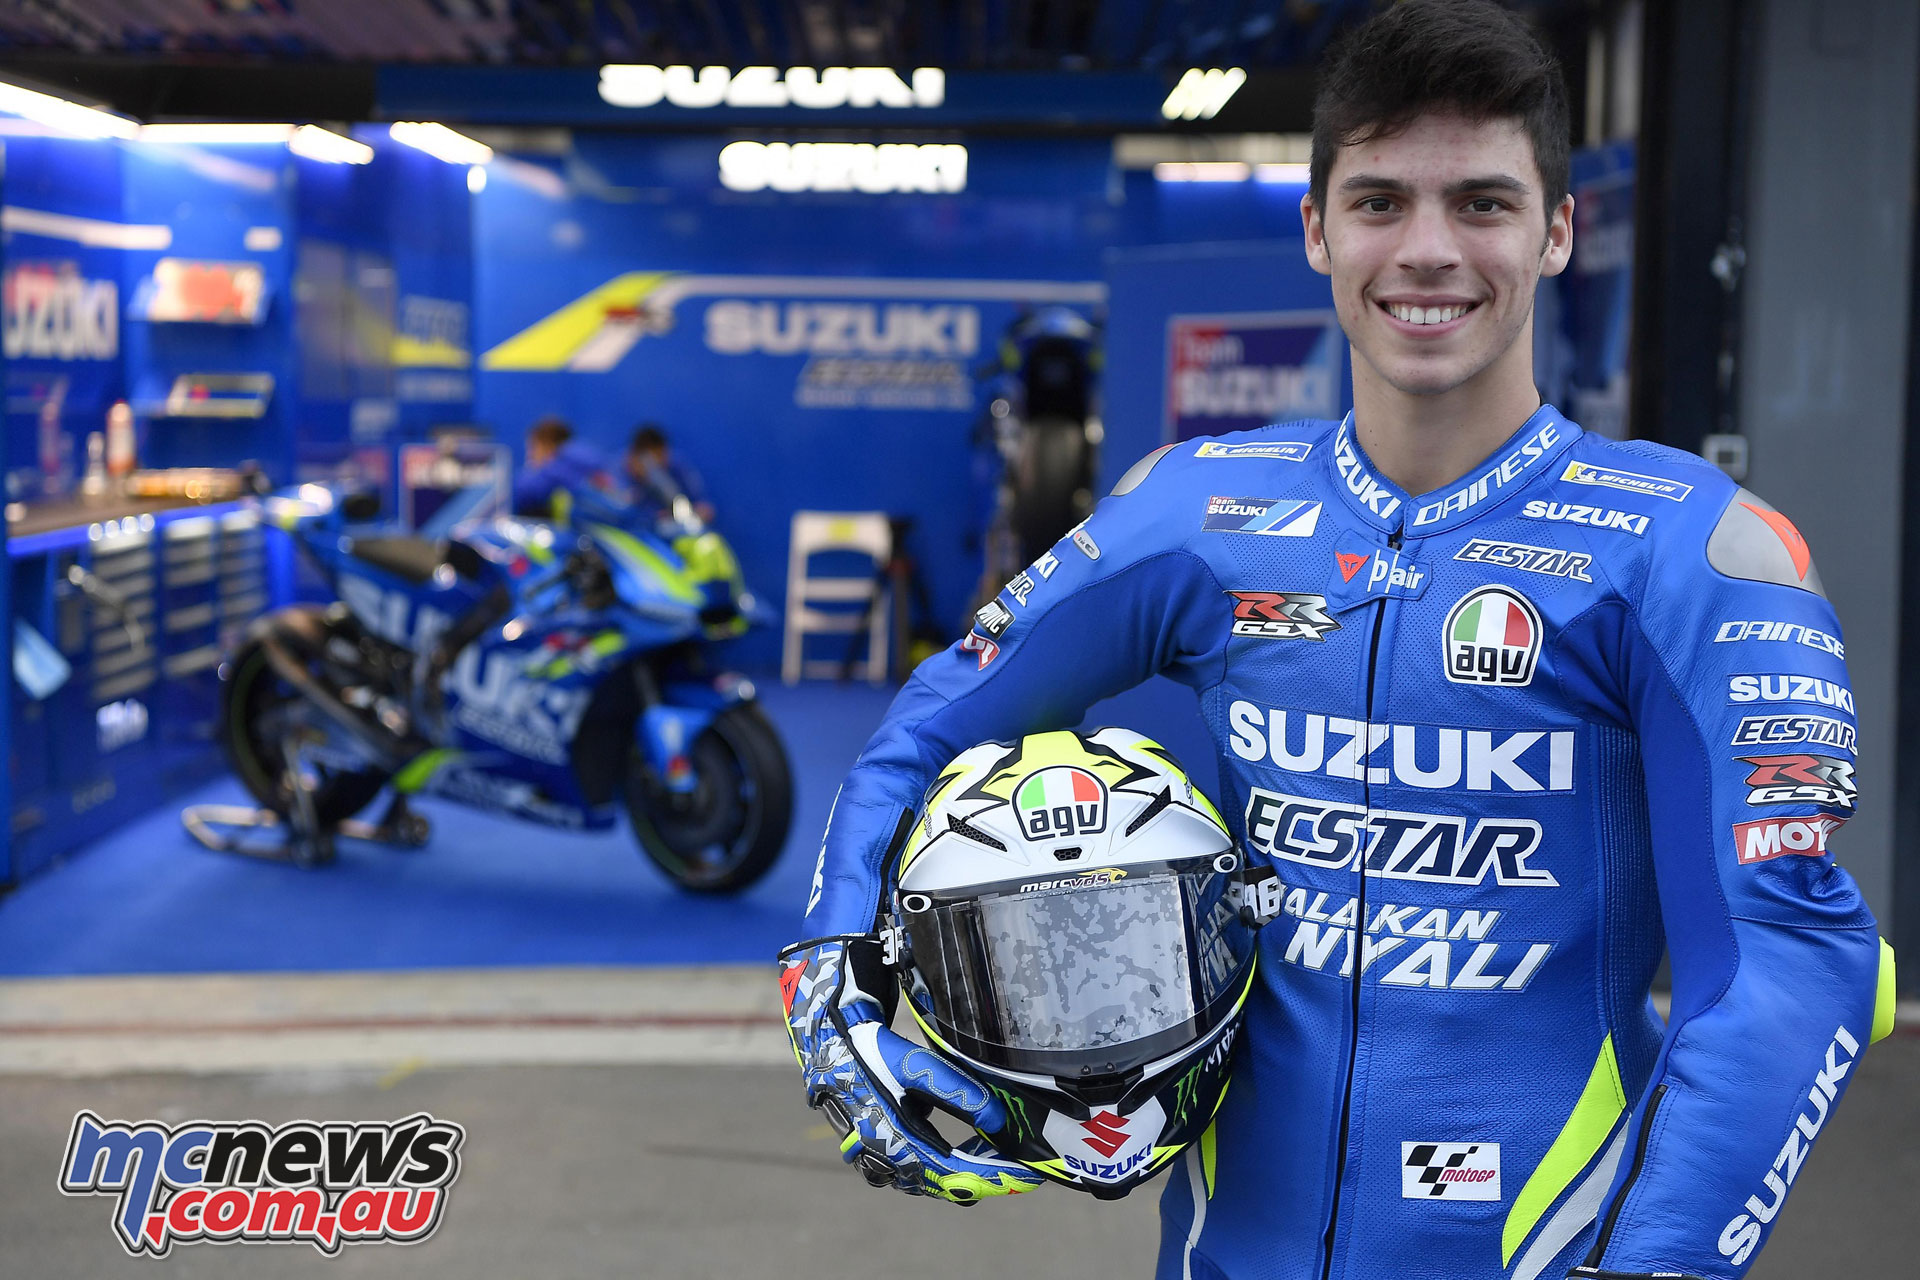 Suzuki Ecstar S Rins Mir Head To Malaysian Test Motorcycle News Sport And Reviews